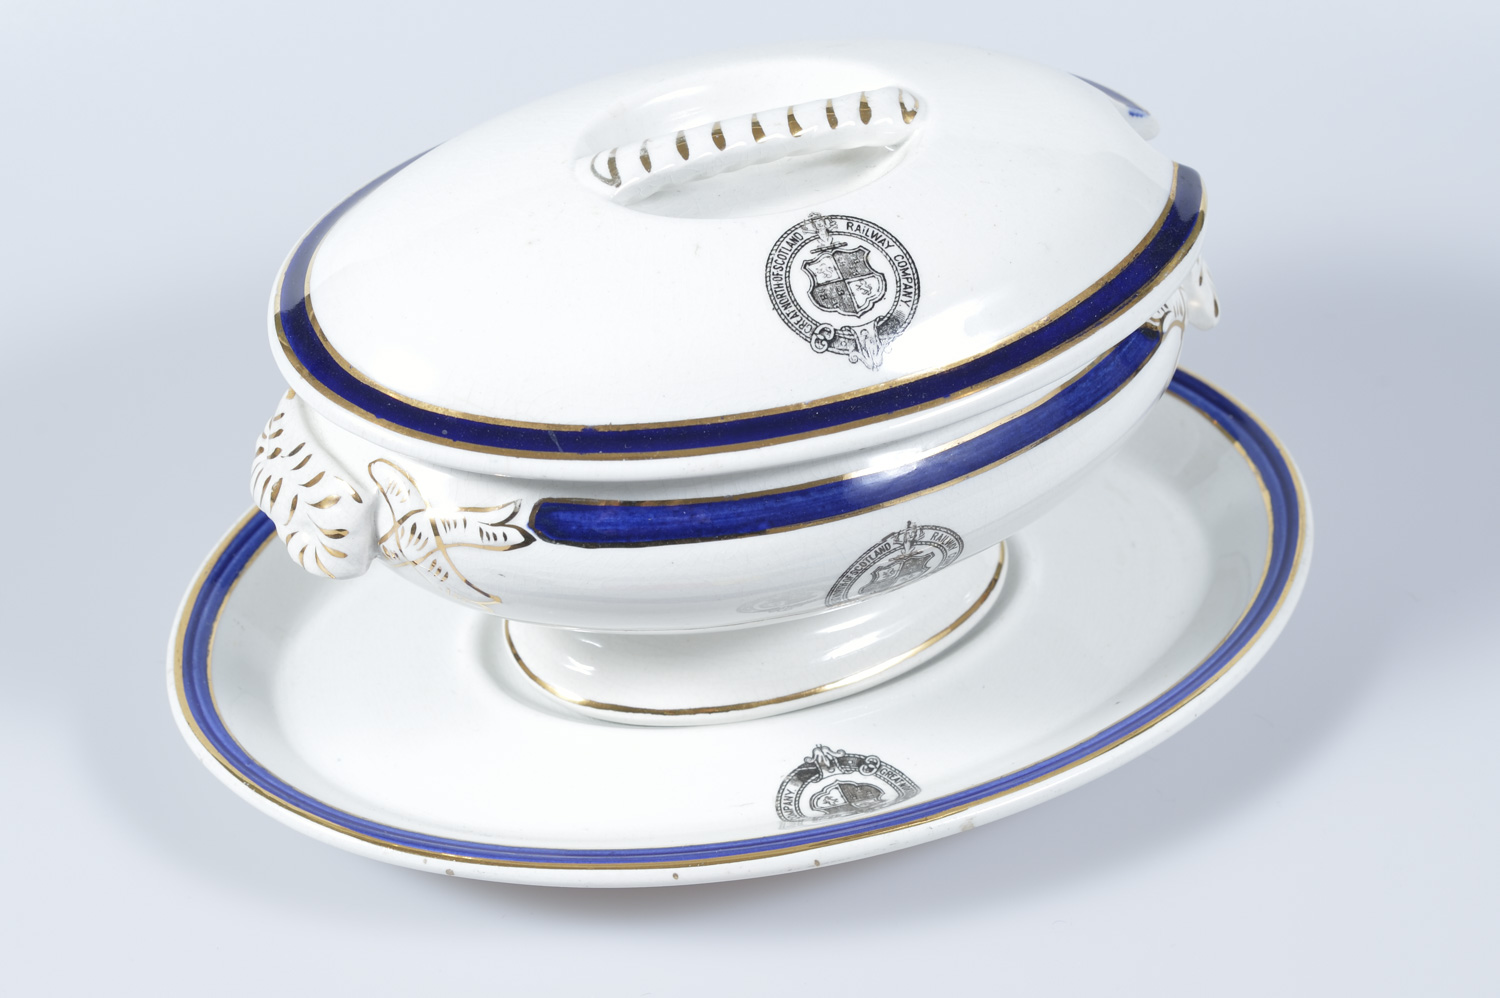 Ceramic tureen from the GNSR hotels